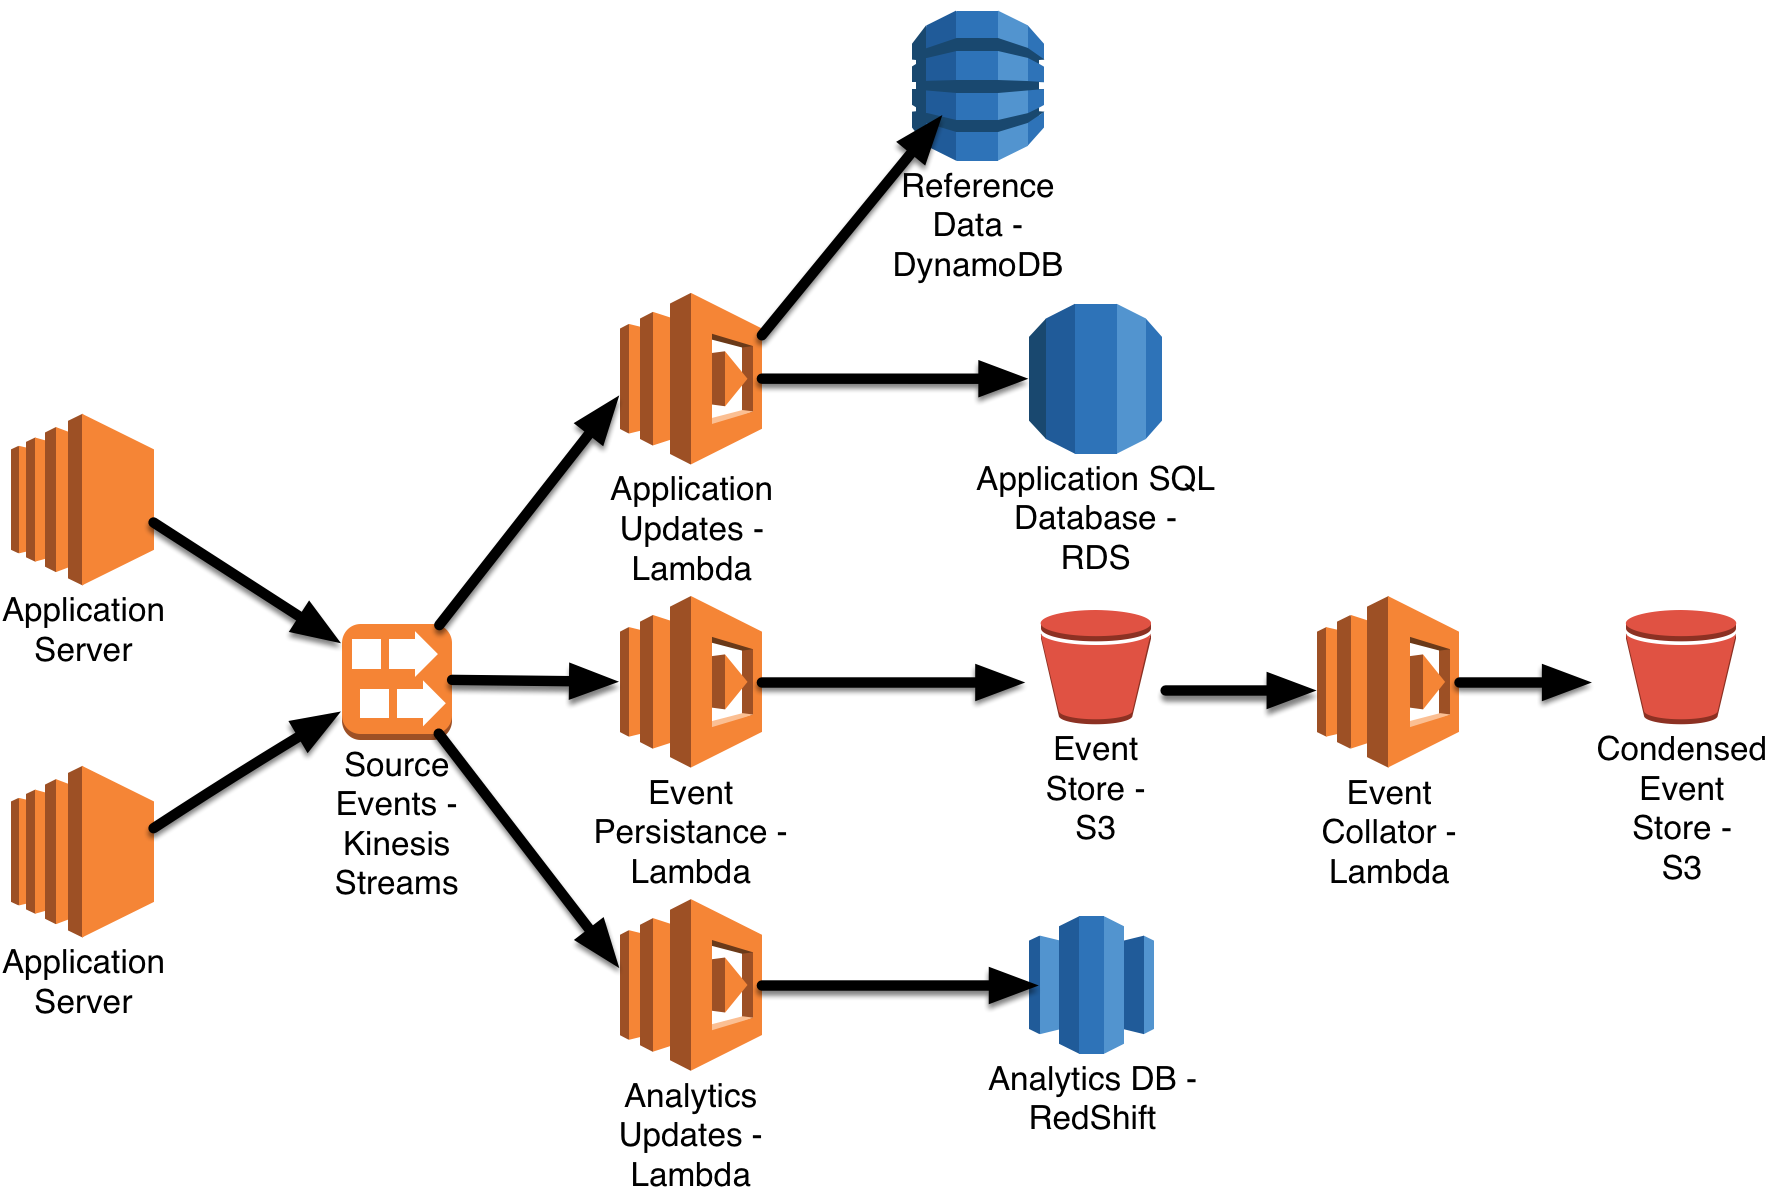 Using serverless architectures to build applications with